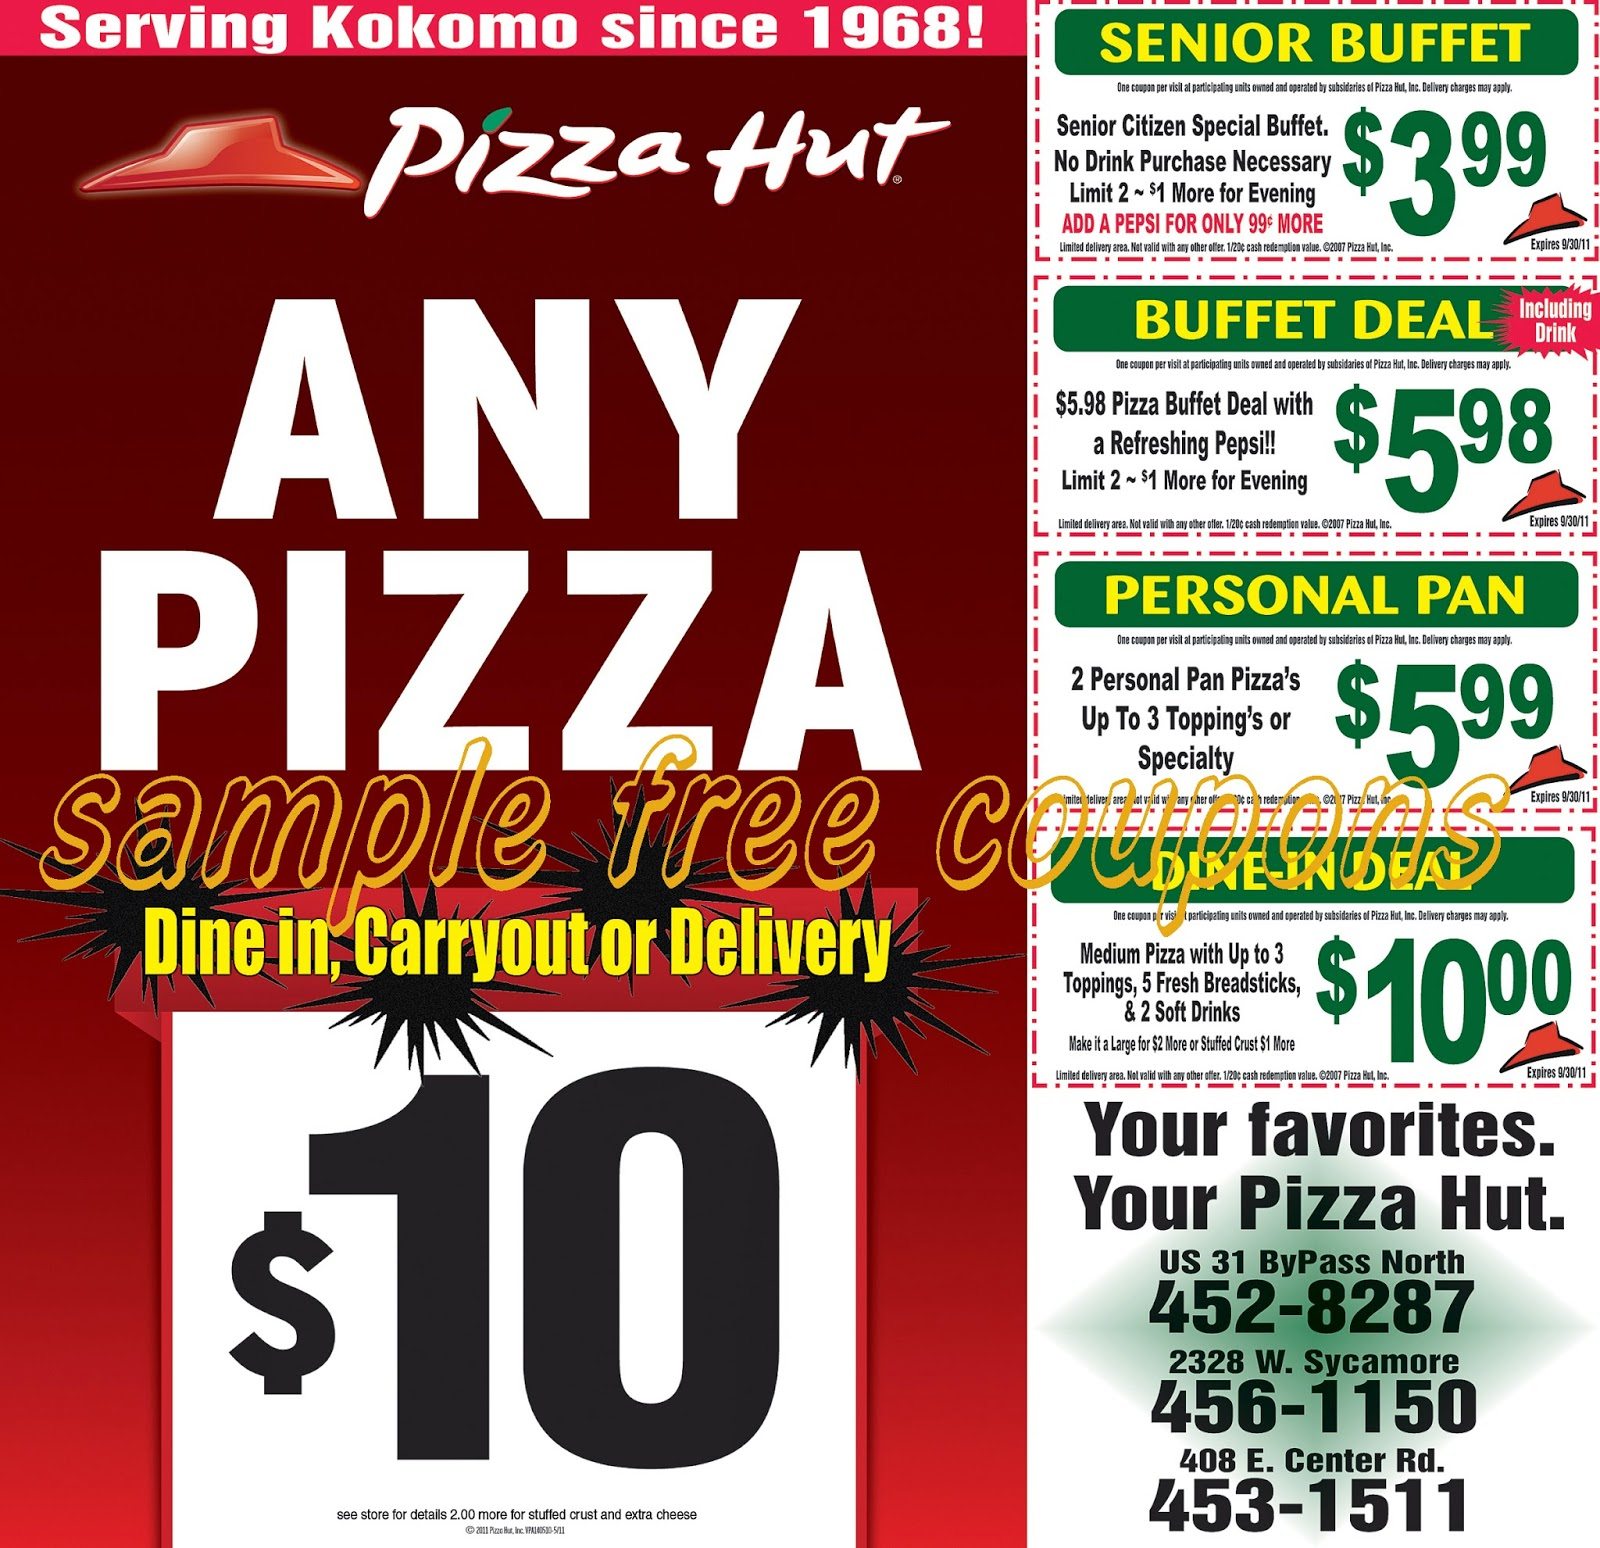 Mary's pizza coupon code